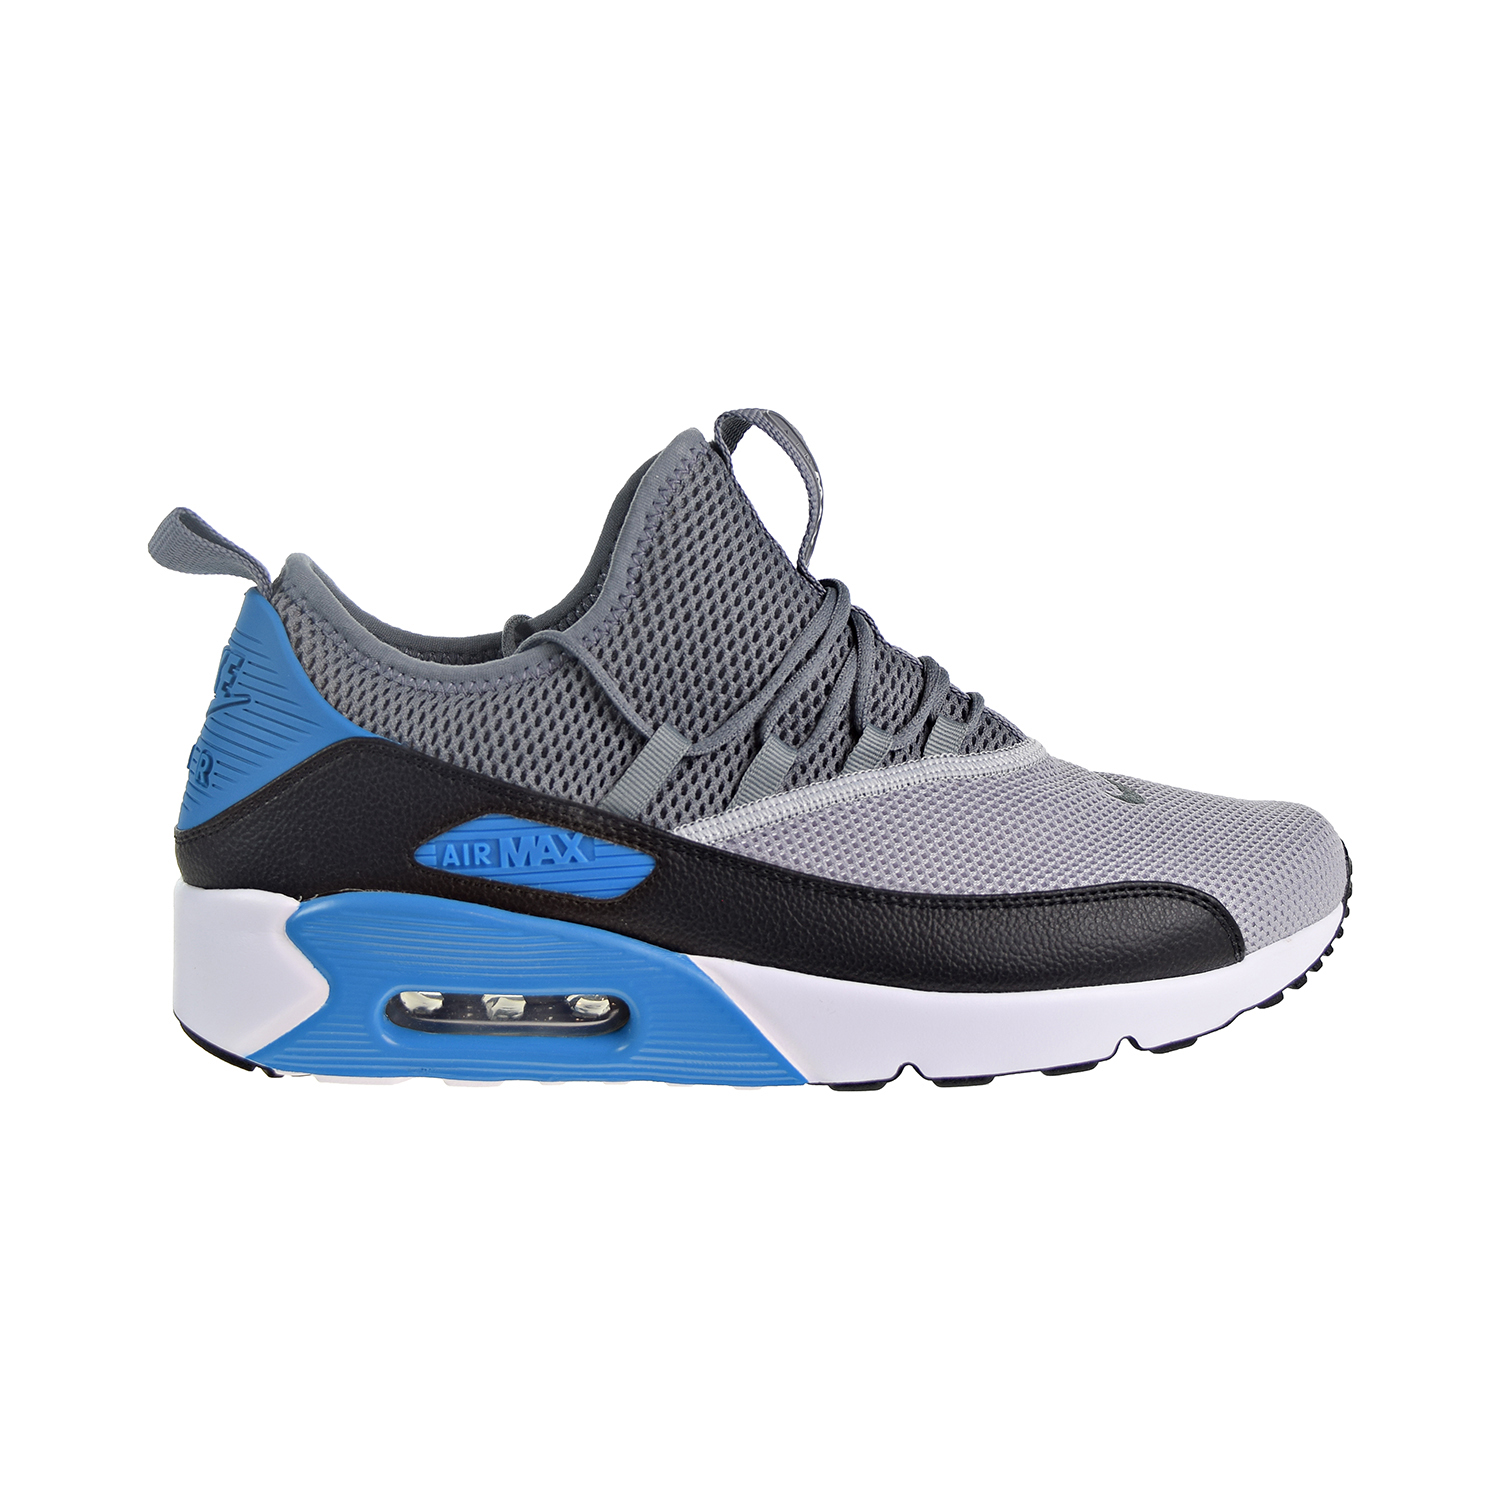 Details about Nike Air Max 90 EZ Men's Shoes Wolf GreyBlackLaser BlueWhite AO1745 004